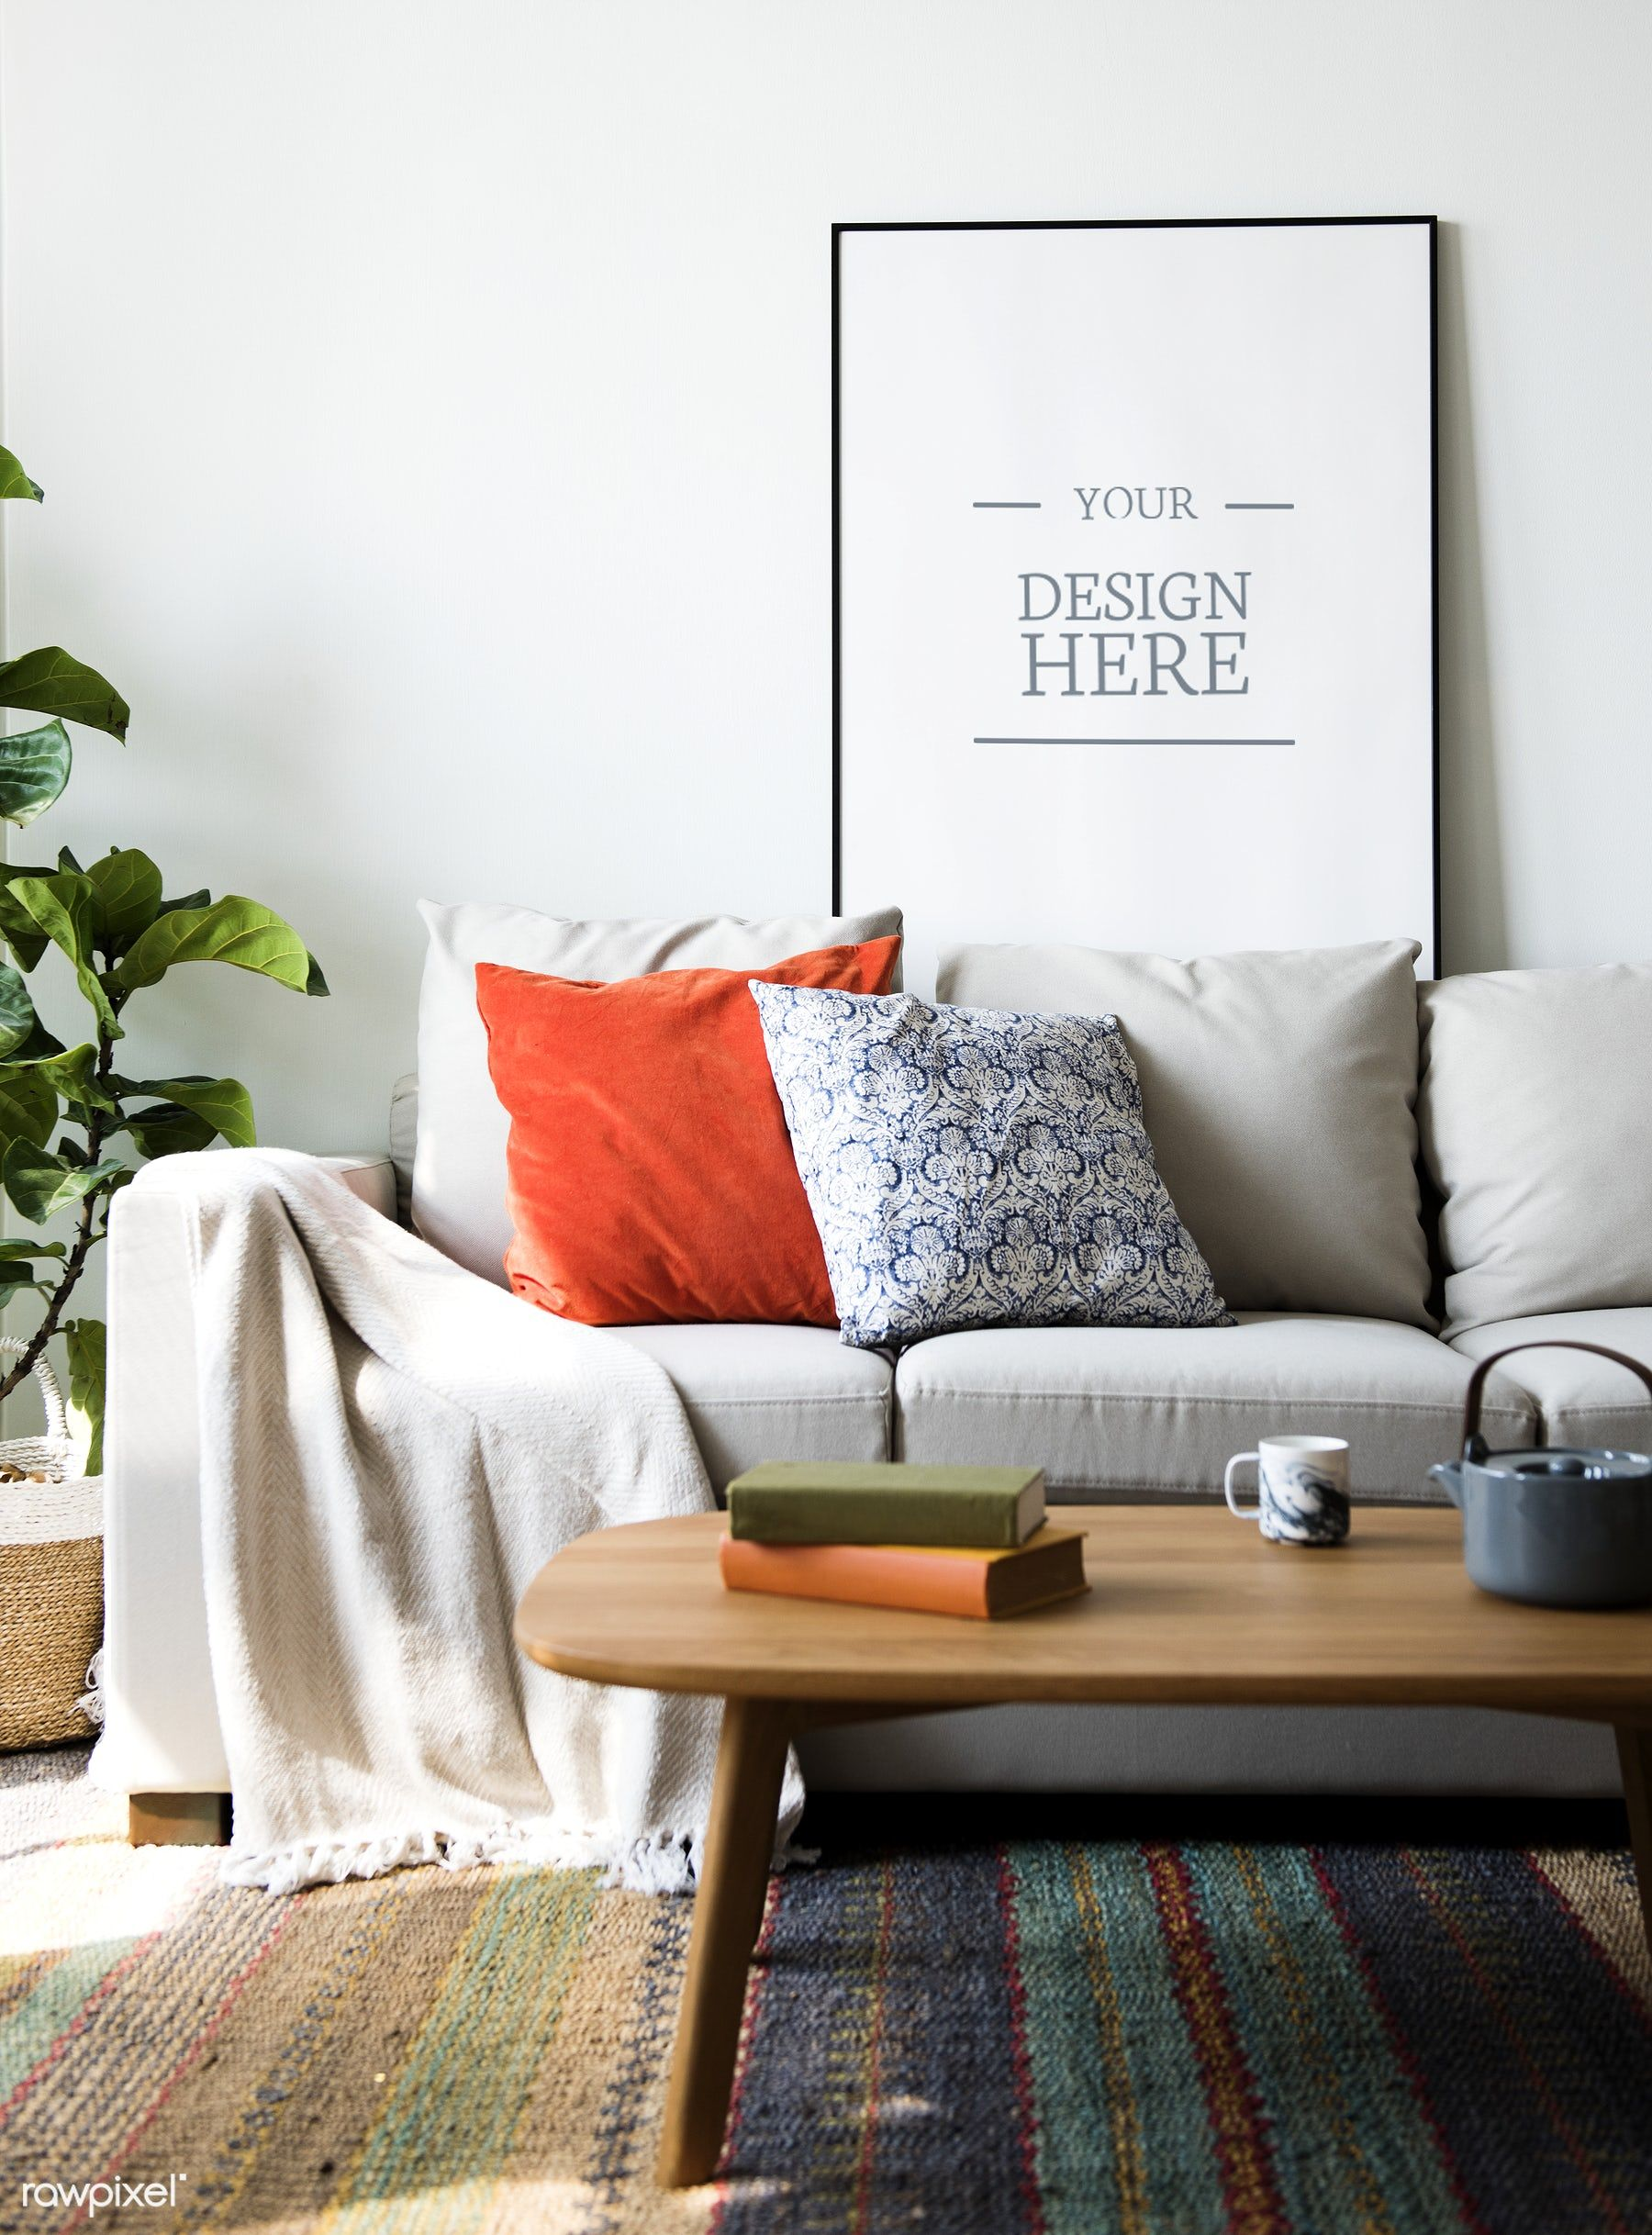 Download Premium Psd Of Living Room With Wall Frame Mockup 296885